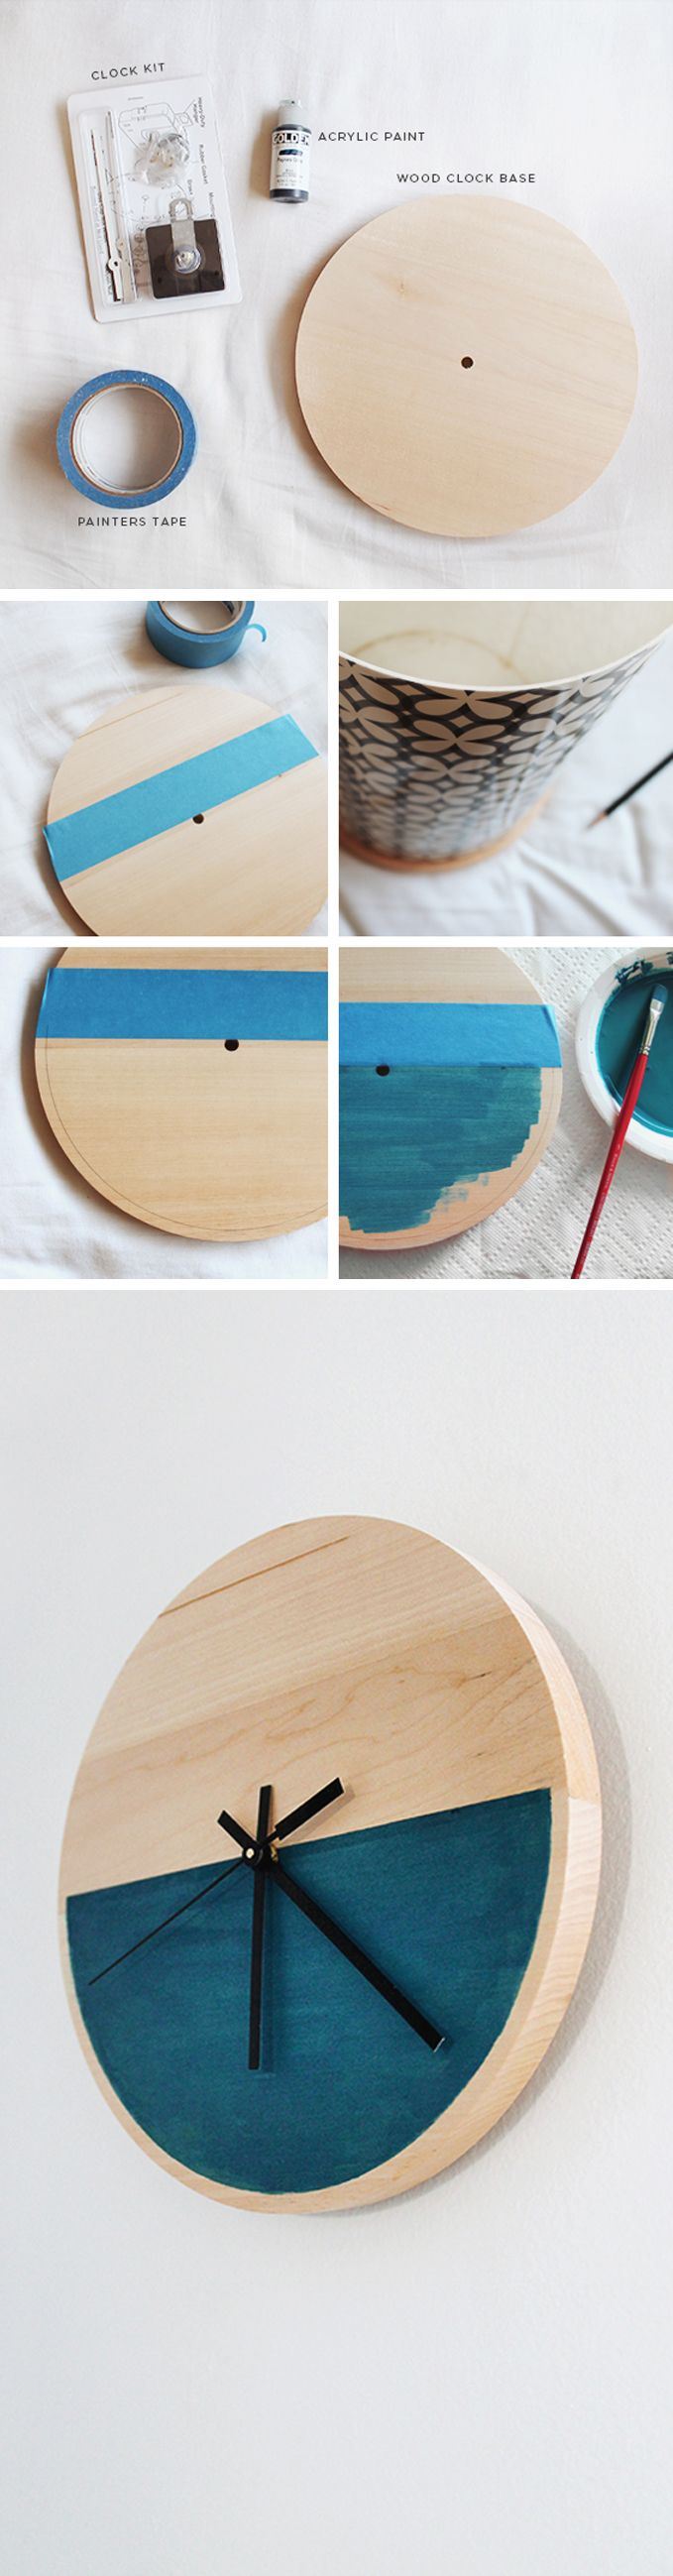 Hacer un bonito reloj de madera./ Make a lovely wooden clock. #recycledesign